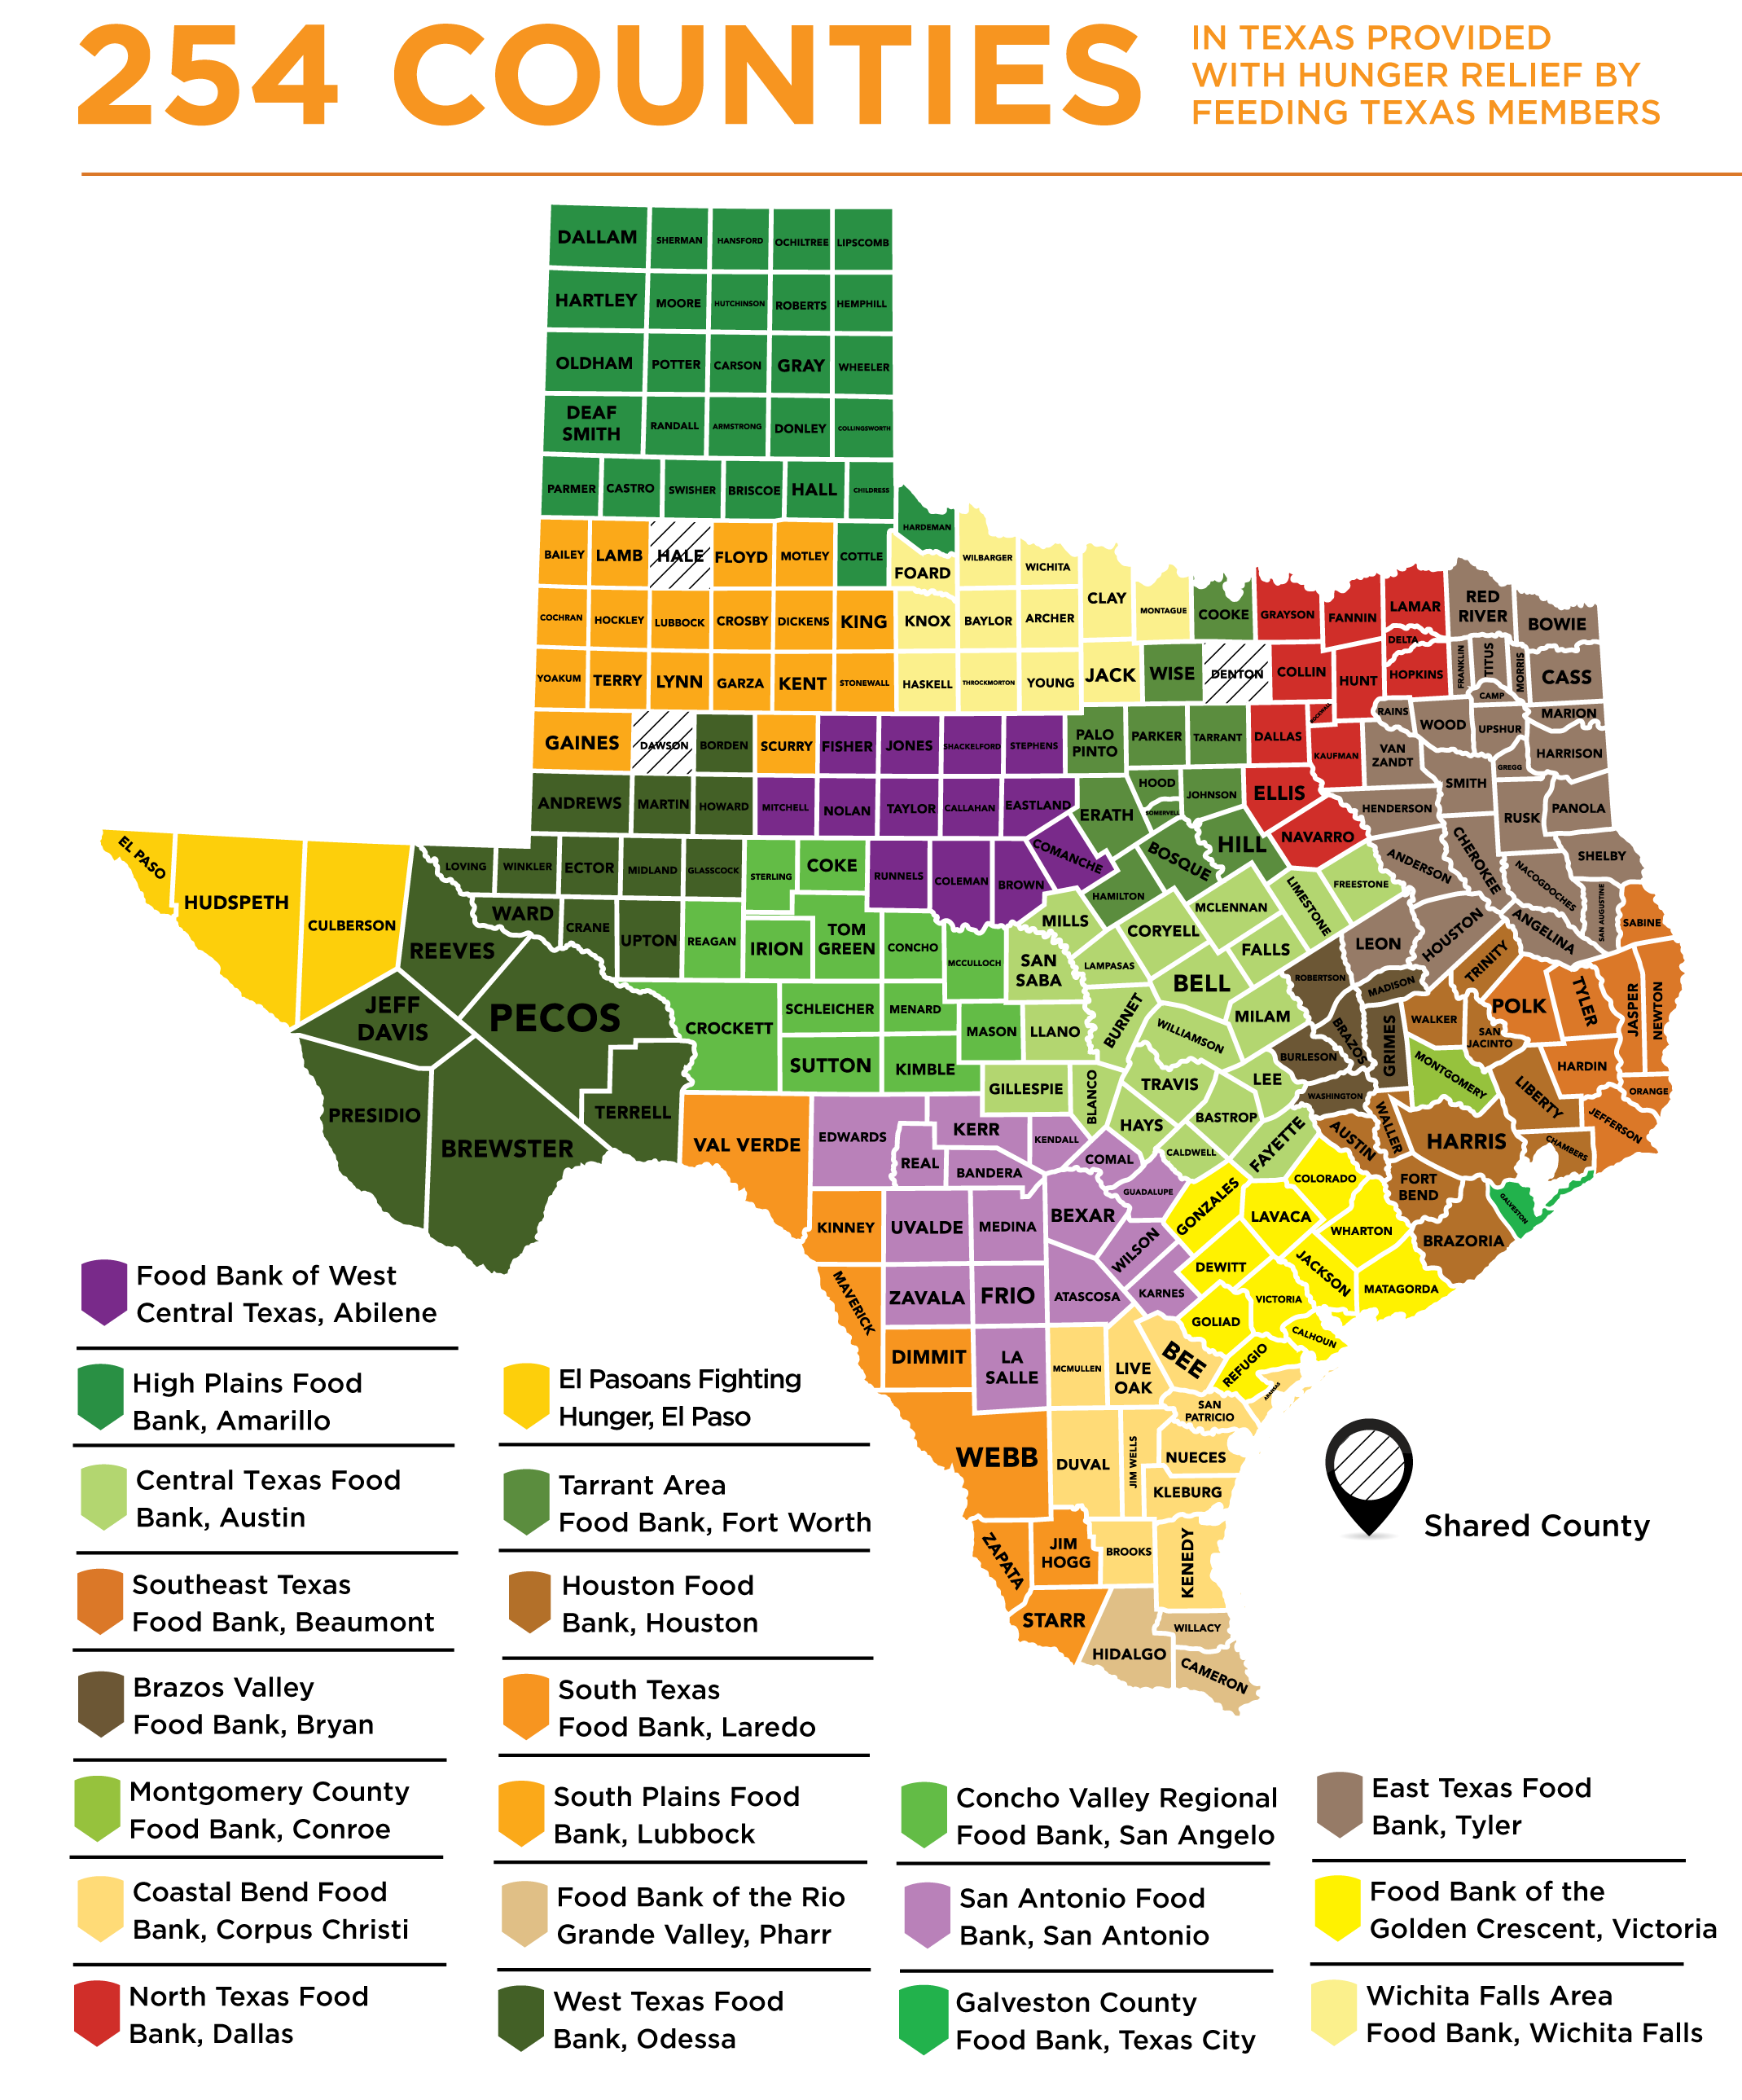 Map of texas showing coverage of each food bank